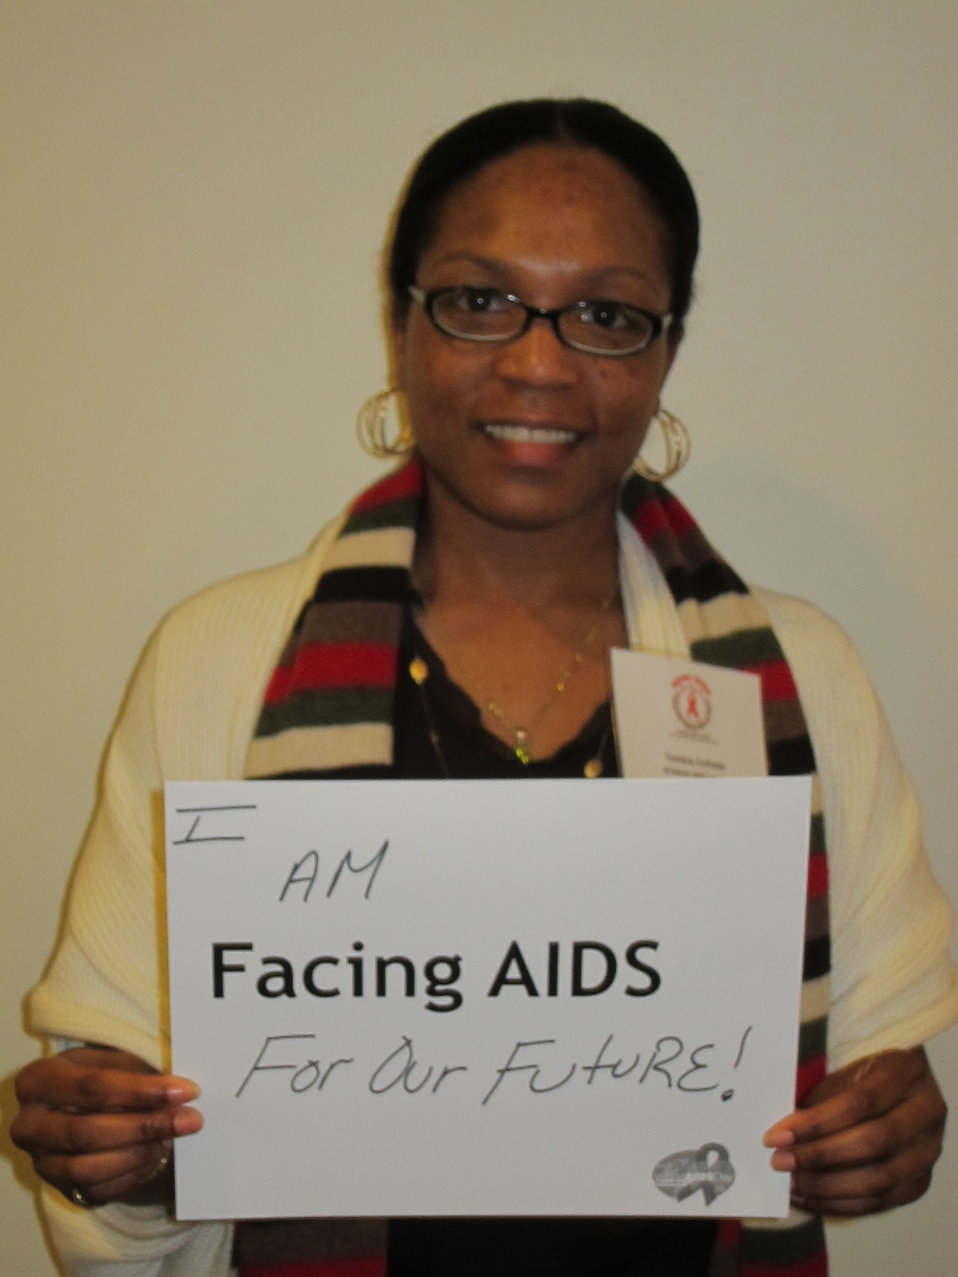 I am Facing AIDS for our future!